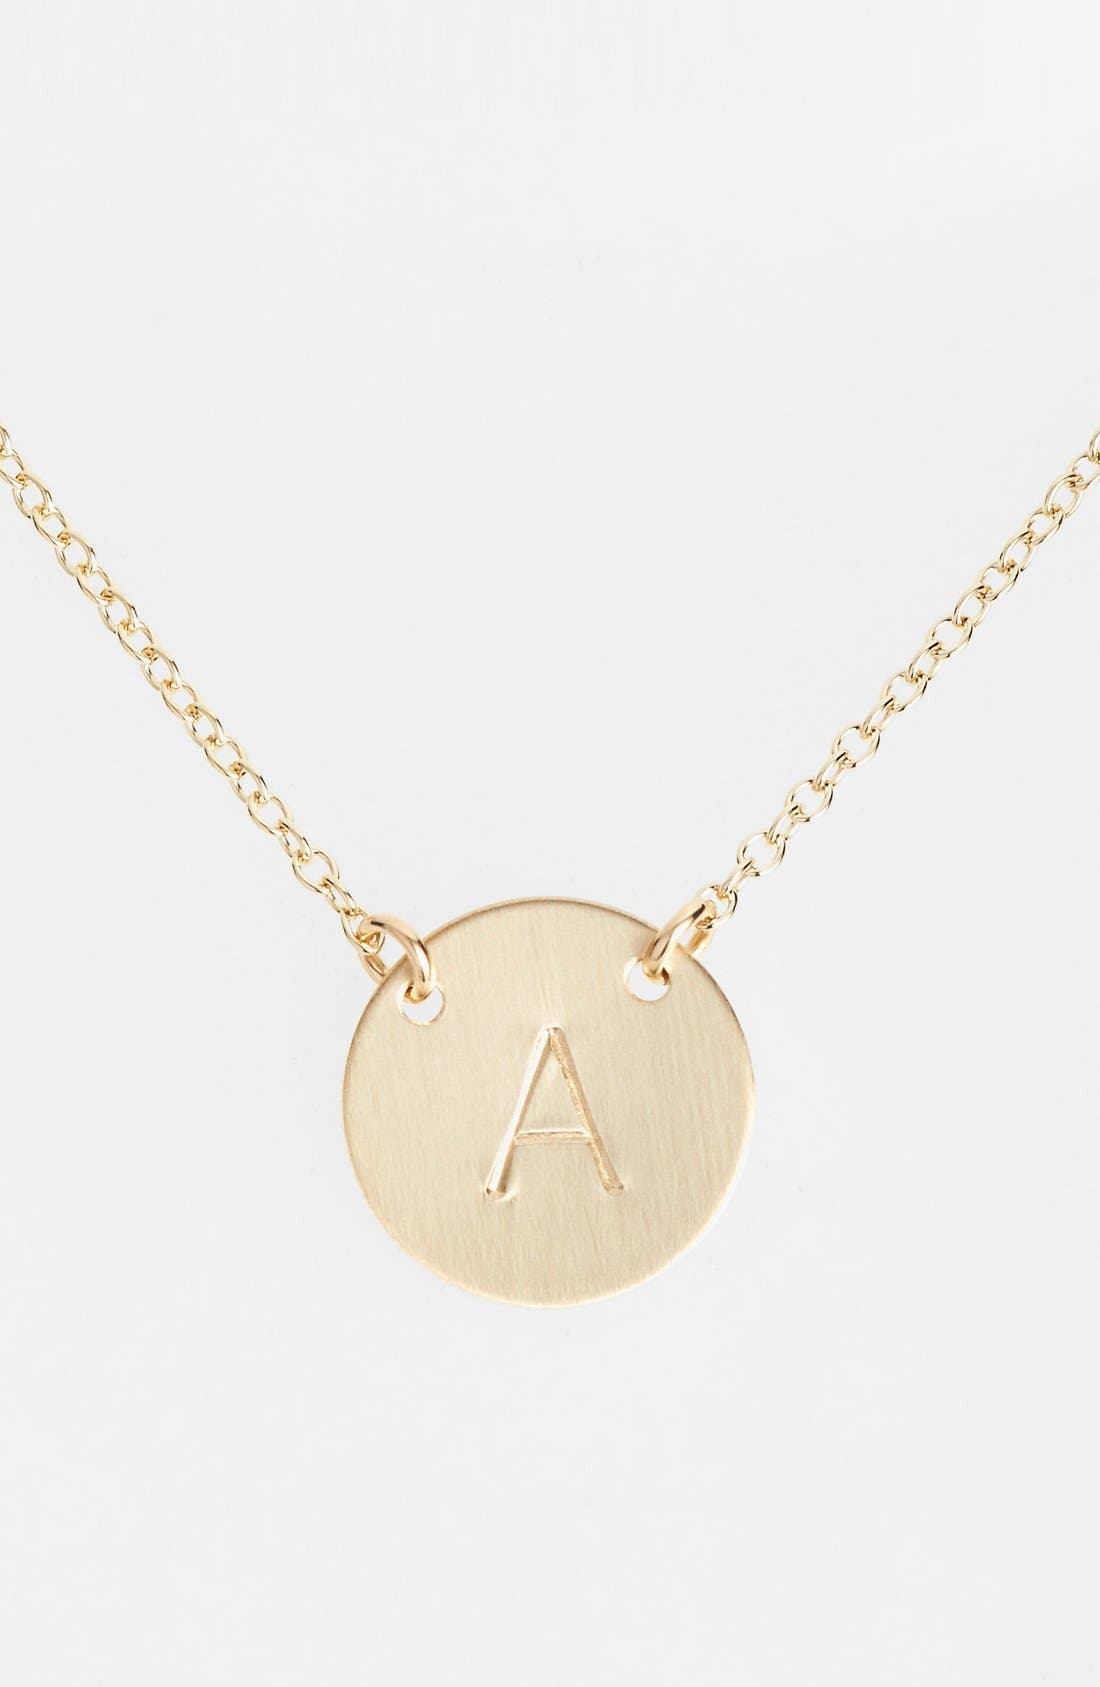 14k-Gold Fill Anchored Initial Disc Necklace, Main, color, 14K GOLD FILL A